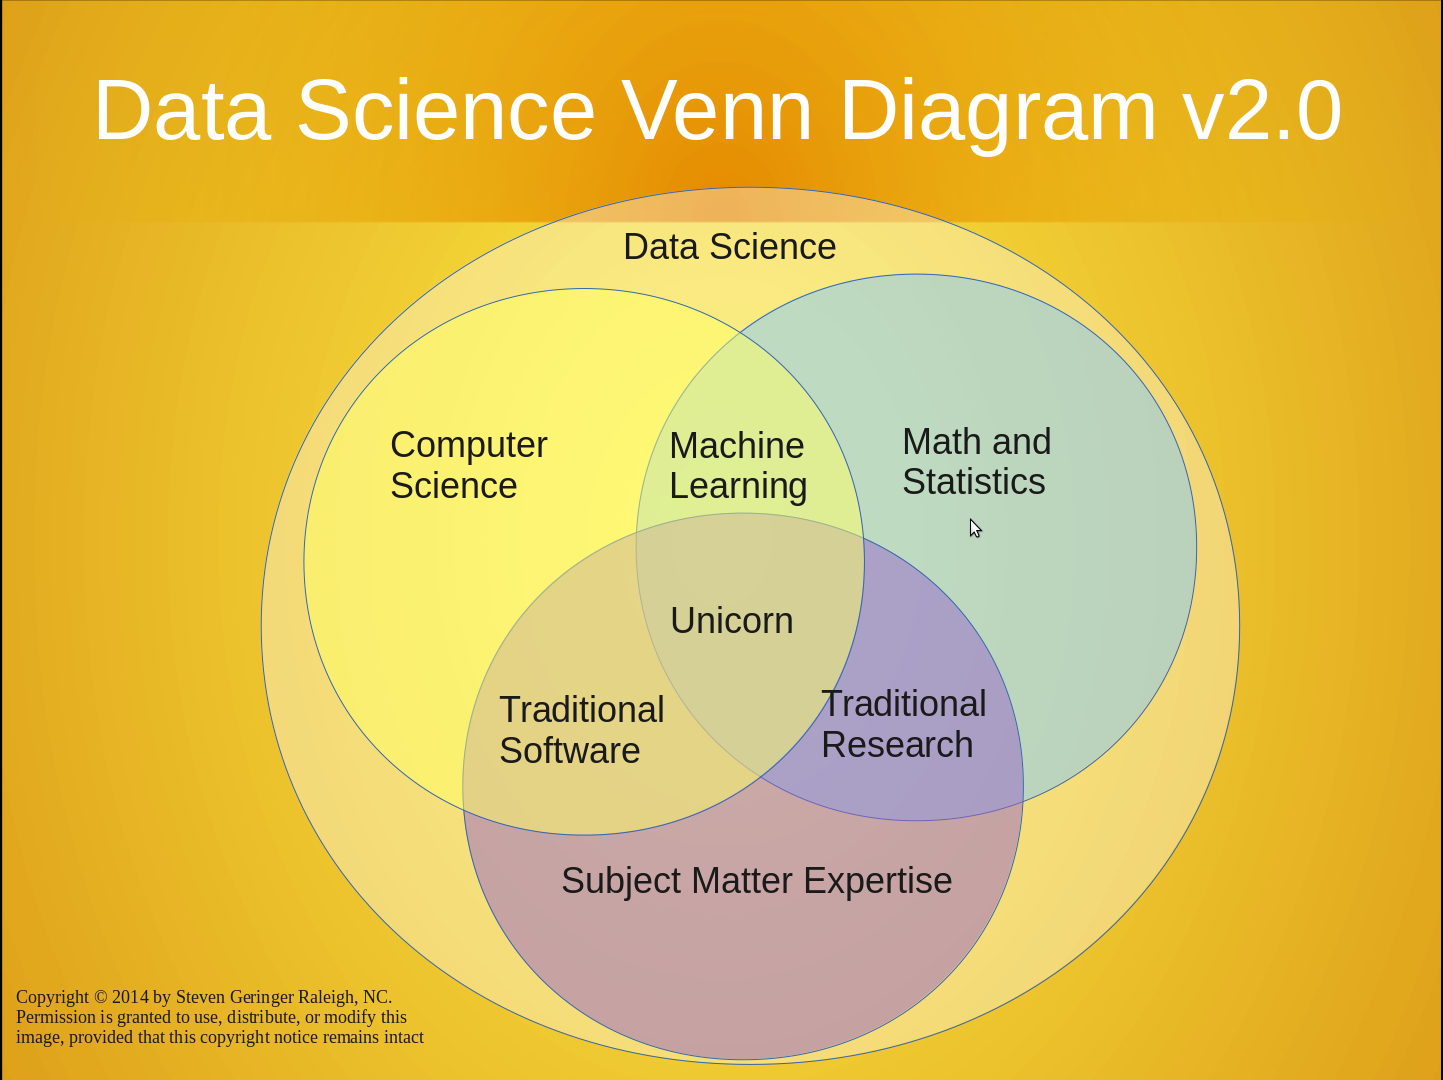 Celebrating venn diagrams a few funny and geeky diagrams itworld data science venn diagram pooptronica Images